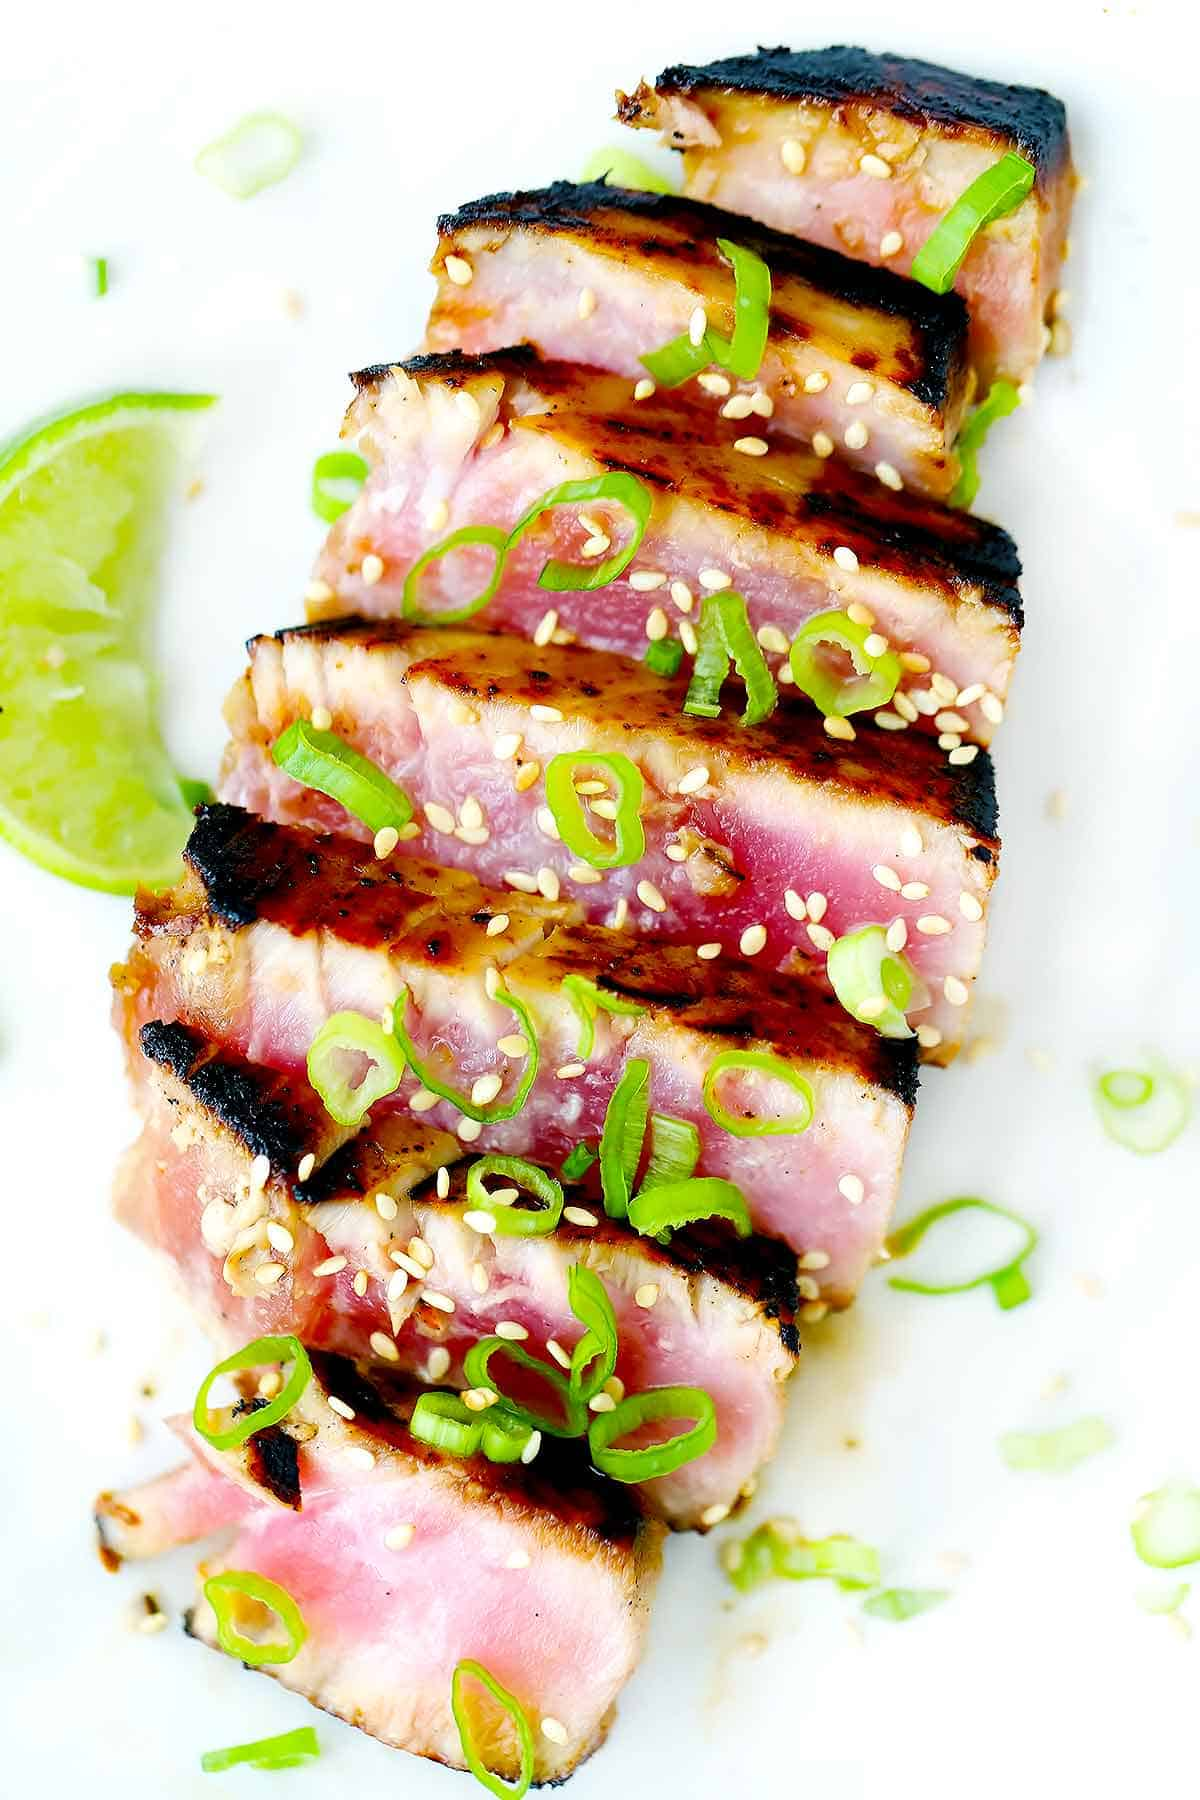 A close up photo of a seared ahi tuna steak